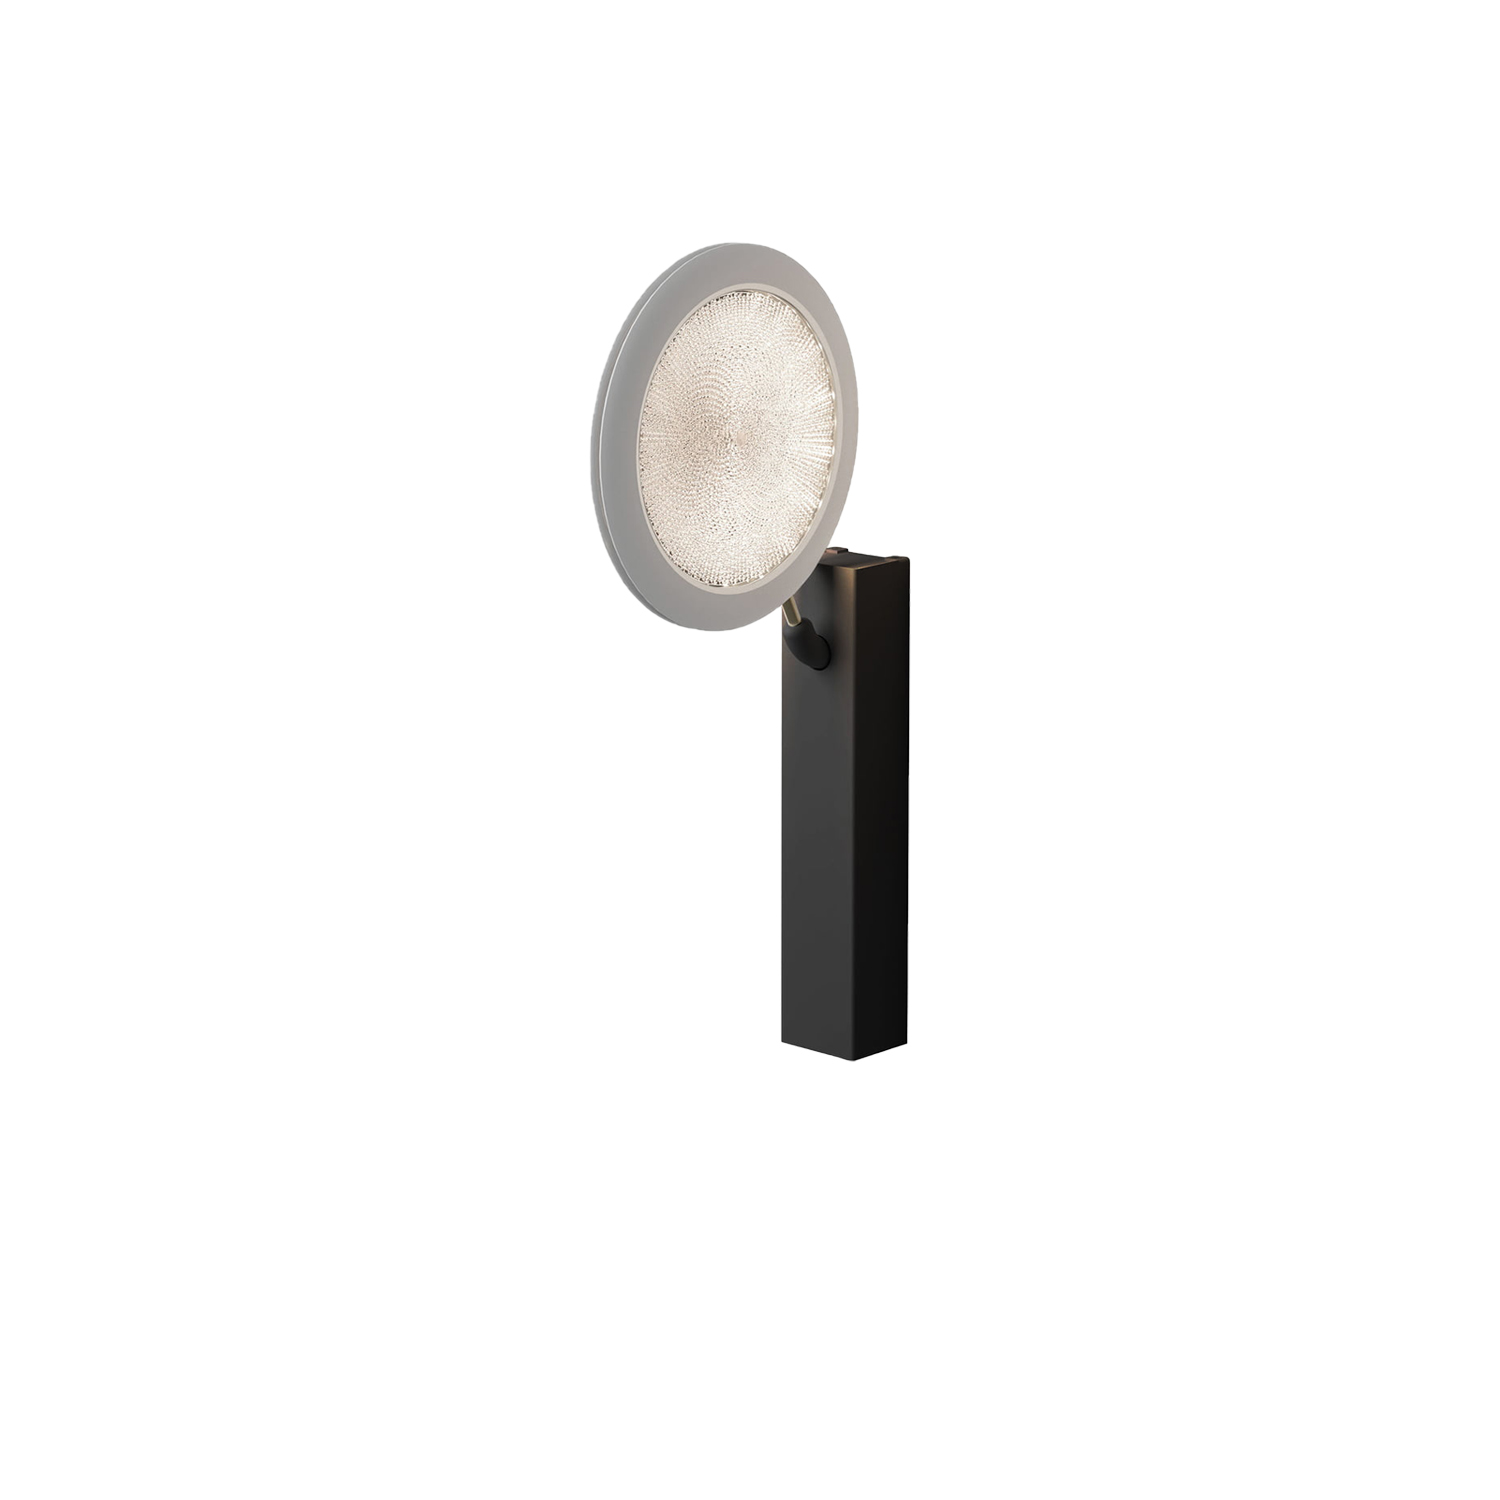 Fly-Too Wall Lamp - An ultraflat luminous disk, adjustable by 360° in space. Fly-too is an LED wall lamp that generates perfect bidirectional floodlighting. The methacrylate lens features a system for recovery of marginal light flow | Matter of Stuff